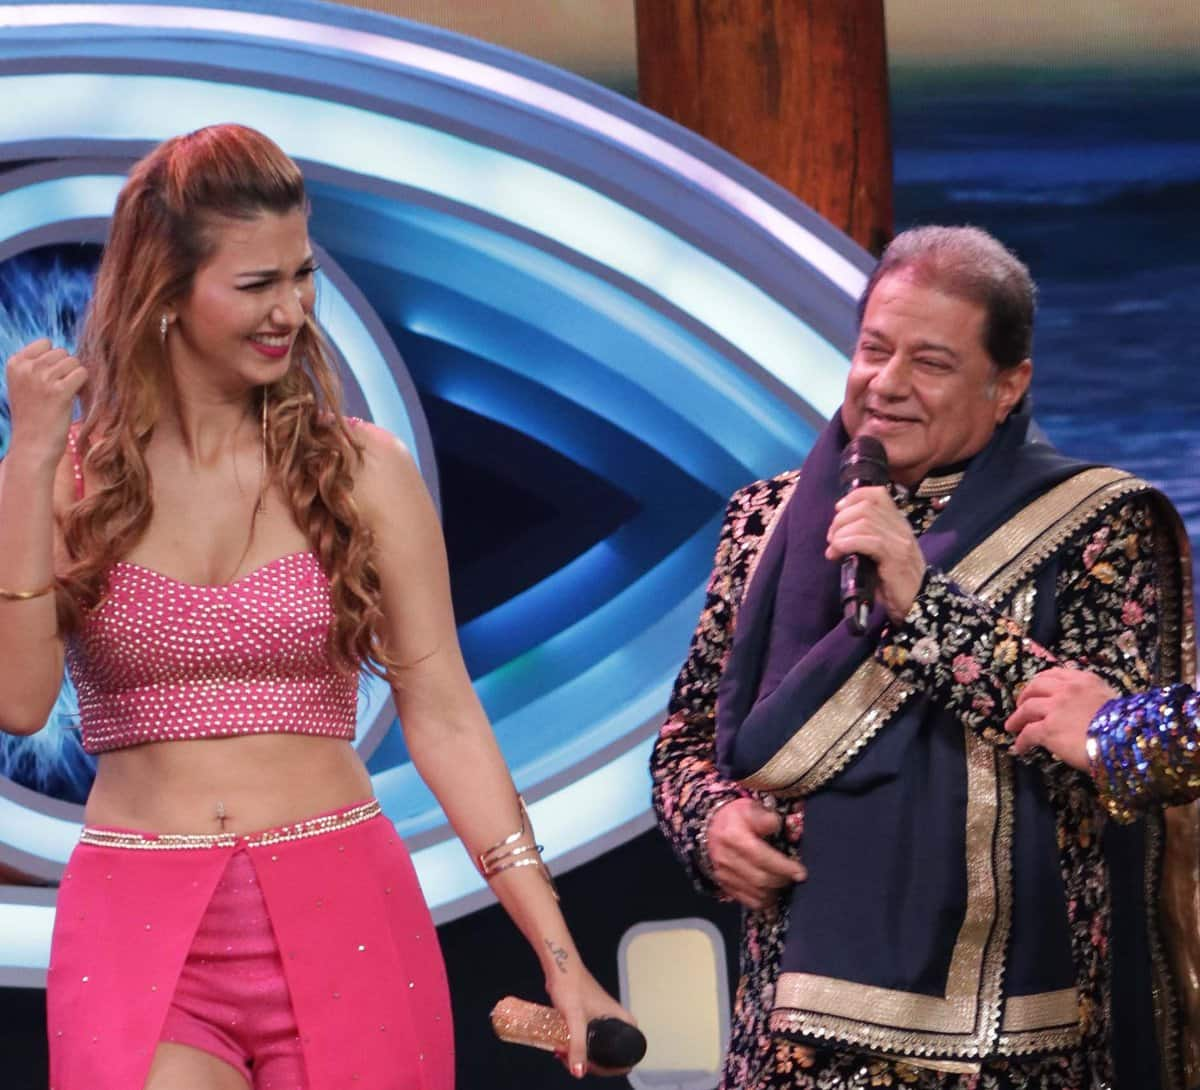 Bigg Boss 12: Anup Jalota accused of sexual exploitation, model files case